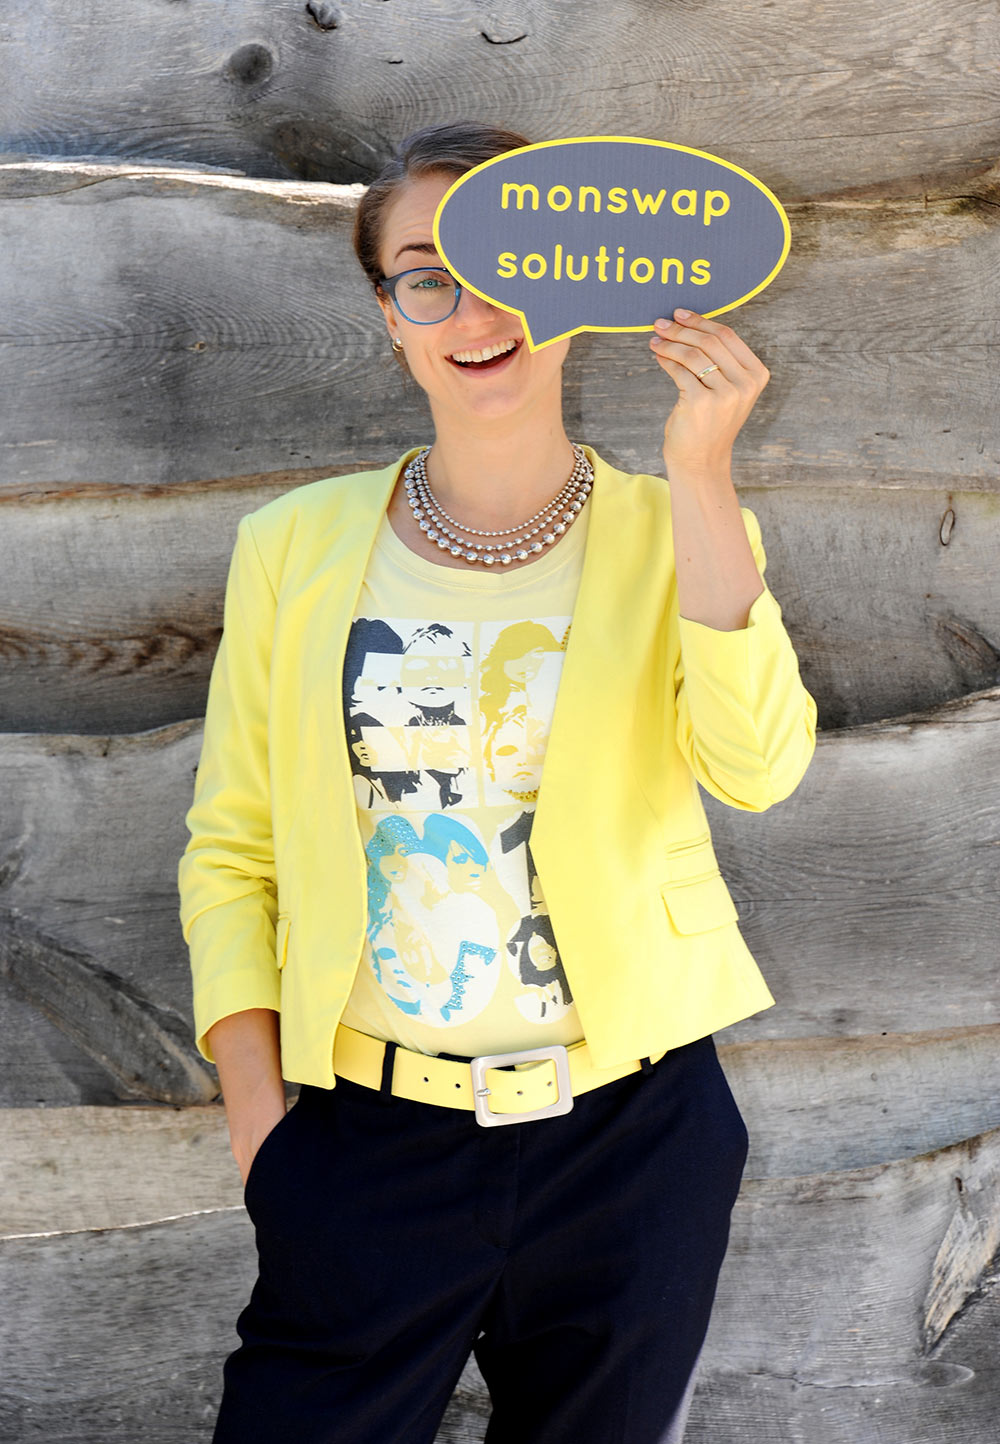 Freelance German copywriter Monika Weber holding a sign that says monswap solutions